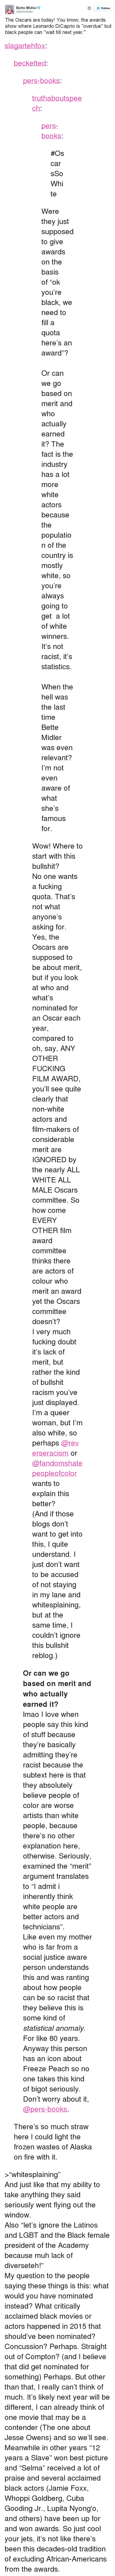 """Jamie Foxx: Bette Midler  @BetteMidler  Follow  The Oscars are today! You know, the awards  show where Leonardo DiCaprio is """"overdue"""" but  black people can """"wait till next year <p><a href=""""http://slagartehfox.tumblr.com/post/140222616147/becketted-pers-books-truthaboutspeech"""" class=""""tumblr_blog"""">slagartehfox</a>:</p><blockquote> <p><a class=""""tumblr_blog"""" href=""""http://becketted.tumblr.com/post/140222214348"""">becketted</a>:</p> <blockquote> <p><a class=""""tumblr_blog"""" href=""""http://pers-books.tumblr.com/post/140221381189"""">pers-books</a>:</p> <blockquote> <p><a class=""""tumblr_blog"""" href=""""http://truthaboutspeech.tumblr.com/post/140220124408"""">truthaboutspeech</a>:</p> <blockquote> <p><a class=""""tumblr_blog"""" href=""""http://pers-books.tumblr.com/post/140167579259"""">pers-books</a>:</p> <blockquote> <p>#OscarsSoWhite</p> </blockquote> <p>Were they just supposed to give awards on the basis of""""ok you're black, we need to fill a quota here's an award""""?<br/><br/>Or can we go based on merit and who actually earned it? The fact is the industry has a lot more white actors because the population of the country is mostly white, so you're always going to get a lot of white winners. It's not racist, it's statistics.<br/><br/>When the hell was the last time Bette Midler was even relevant? I'm not even aware of what she's famous for.</p> </blockquote> <p>Wow! Where to start with this bullshit?</p> <p>No one wants a fucking quota. That's not what anyone's asking for. Yes, the Oscars are supposed to be about merit, but if you look at who and what's nominated for an Oscar each year, compared to oh, say, ANY OTHER FUCKING FILM AWARD, you'll see quite clearly that non-white actors and film-makers of considerable merit are IGNORED by the nearly ALL WHITE ALL MALE Oscars committee. So how come EVERY OTHER film award committee thinks there are actors of colour who merit an award yet the Oscars committee doesn't?</p> <p>I very much fucking doubt it's lack of merit, but rather the kind of bullshit racism y"""